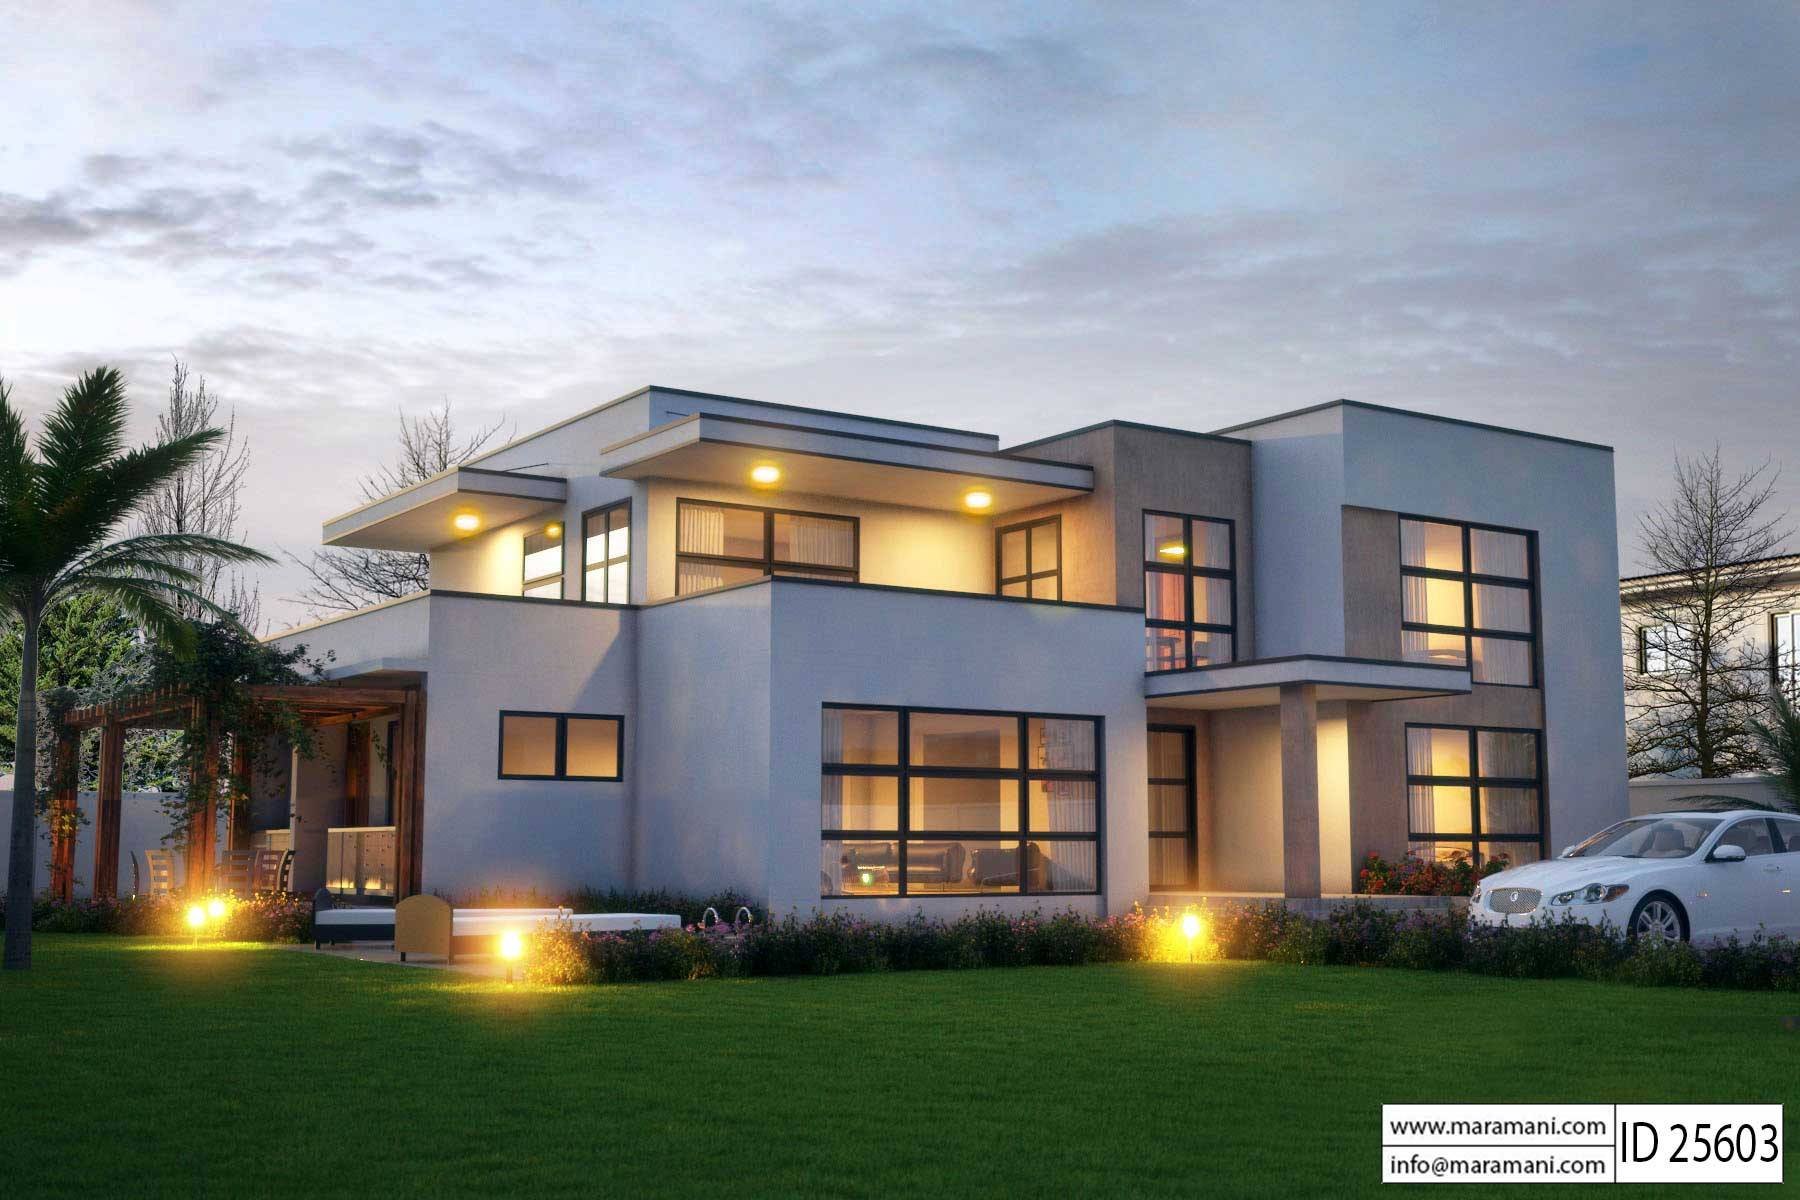 Modern 5 bedroom house design id 25603 floor plans by for Home by design